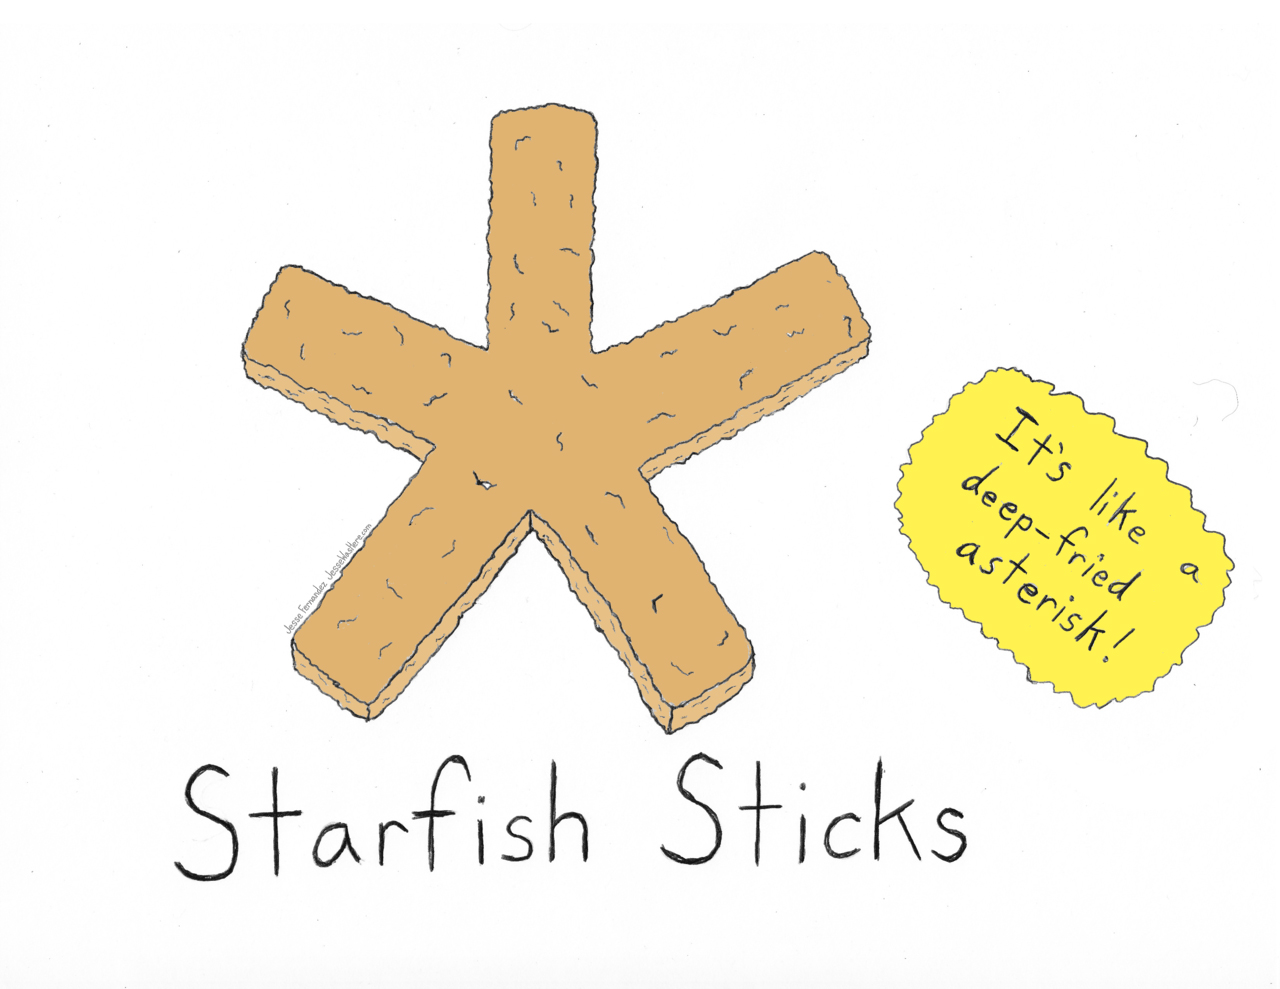 starfish-sticks